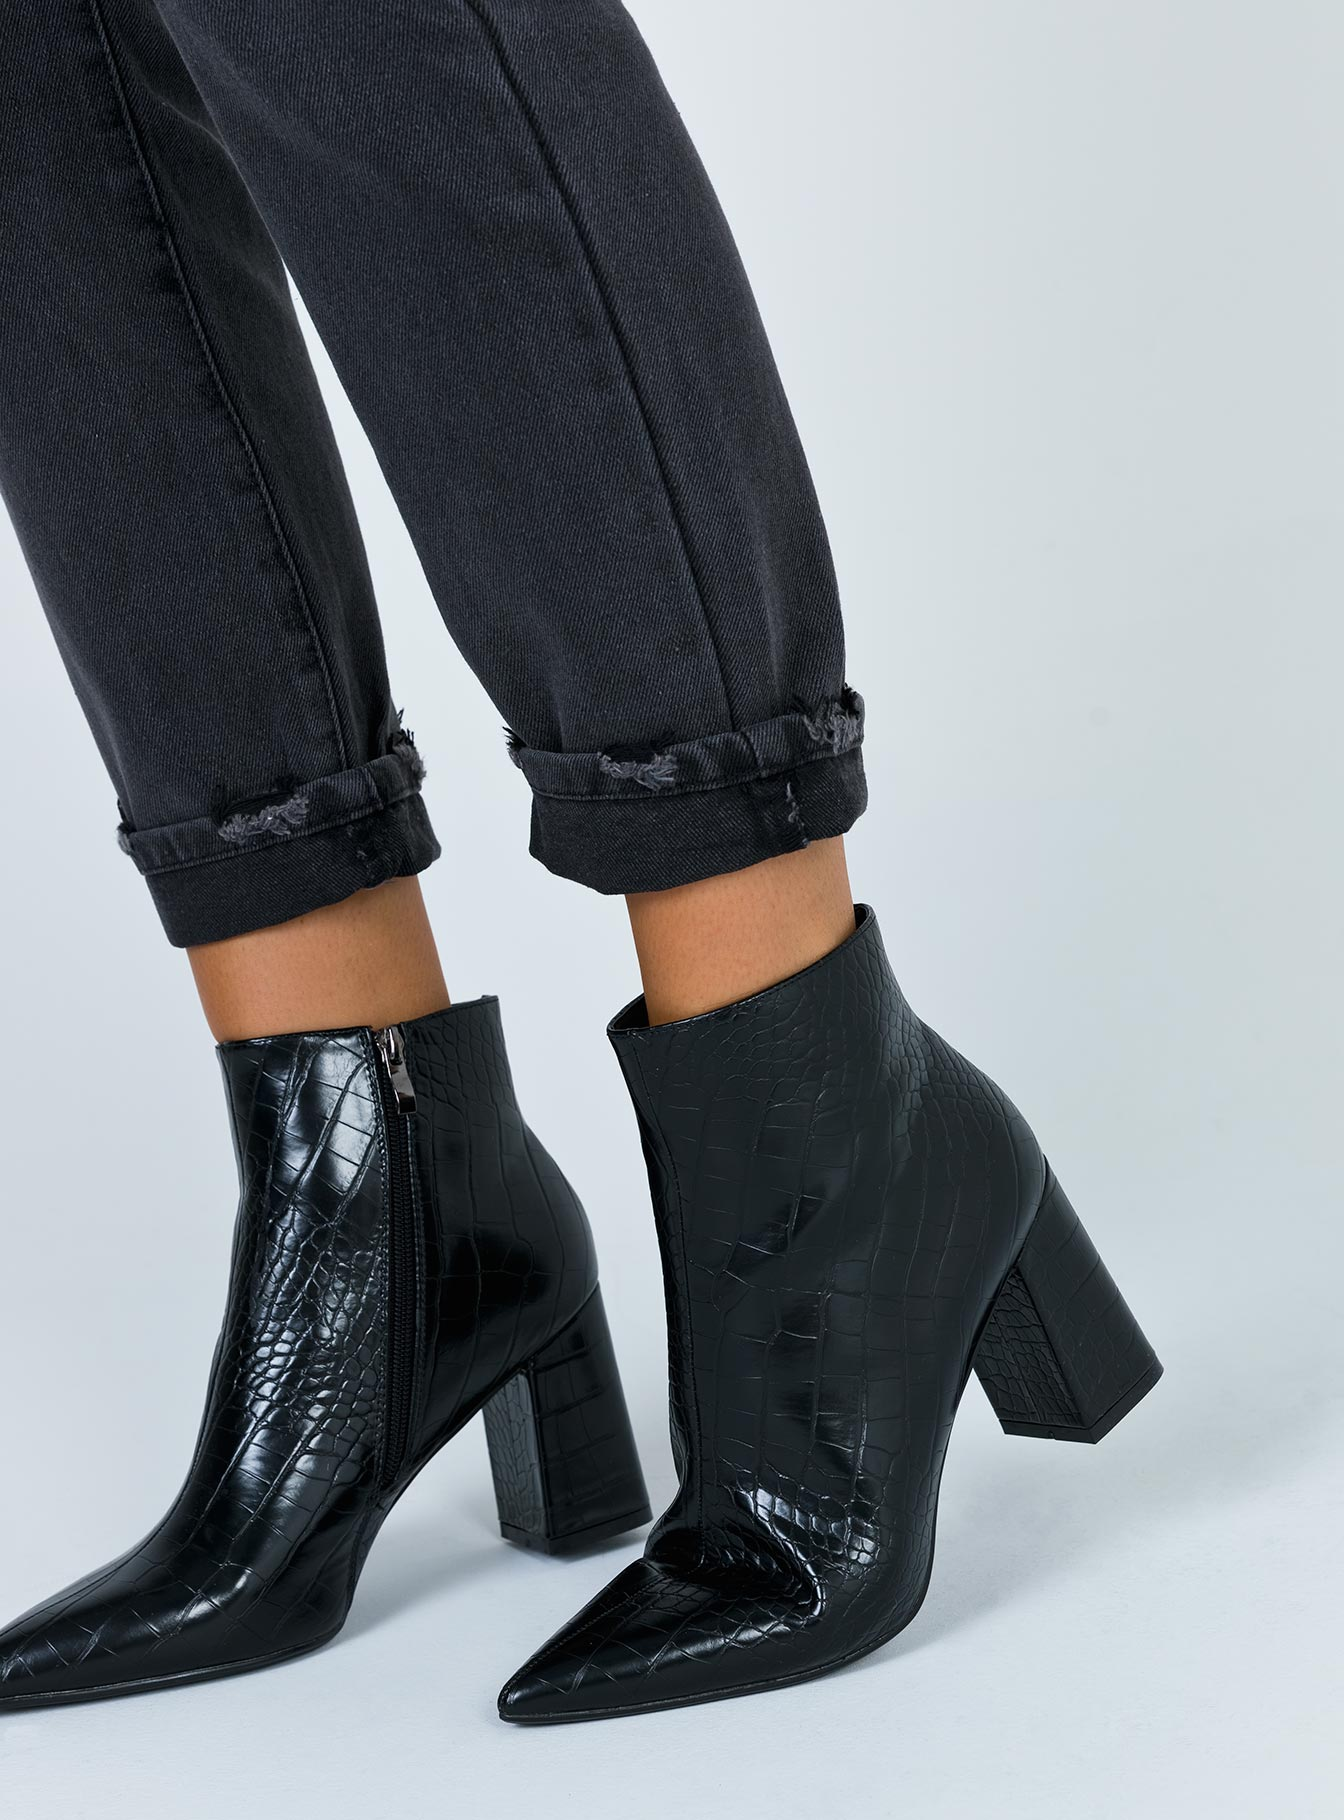 Therapy Alloy Black Croc Boots